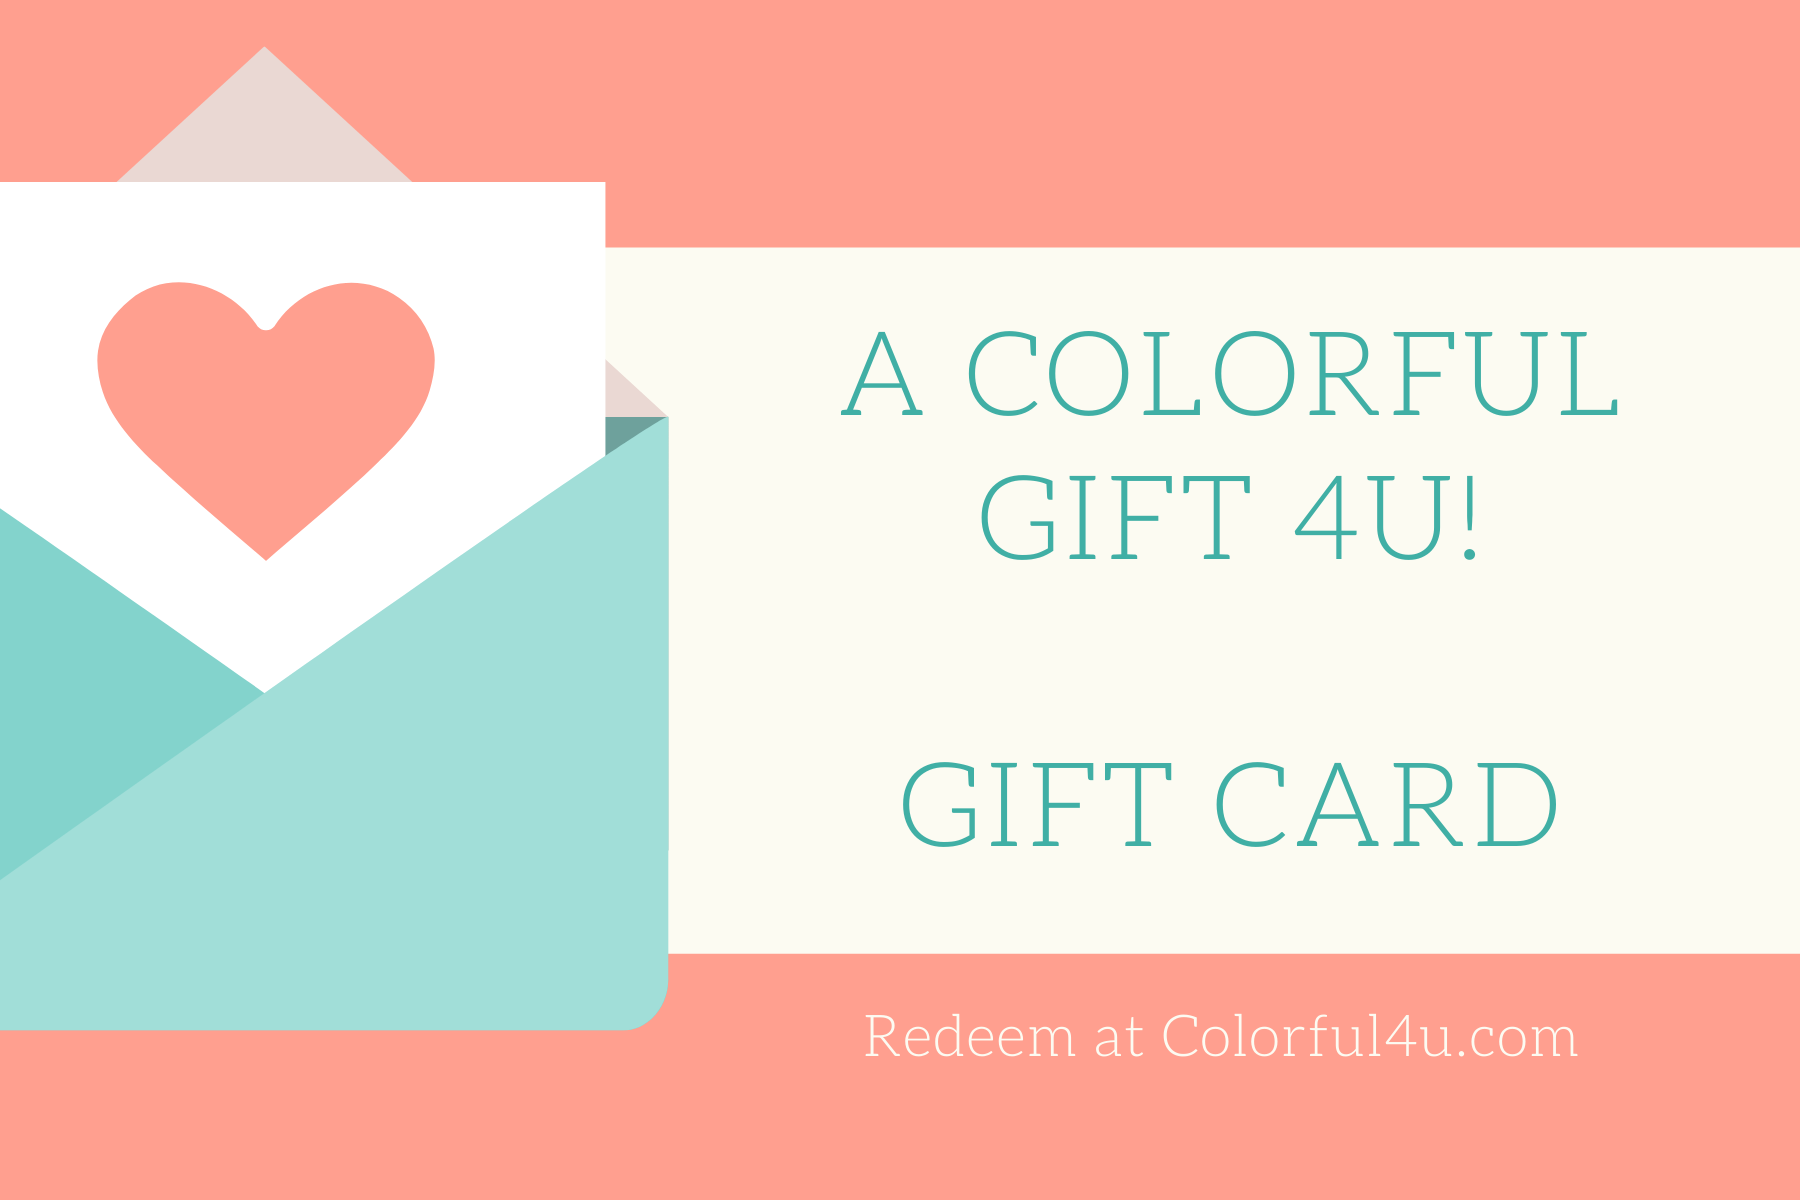 Colorful4U Gift Cards